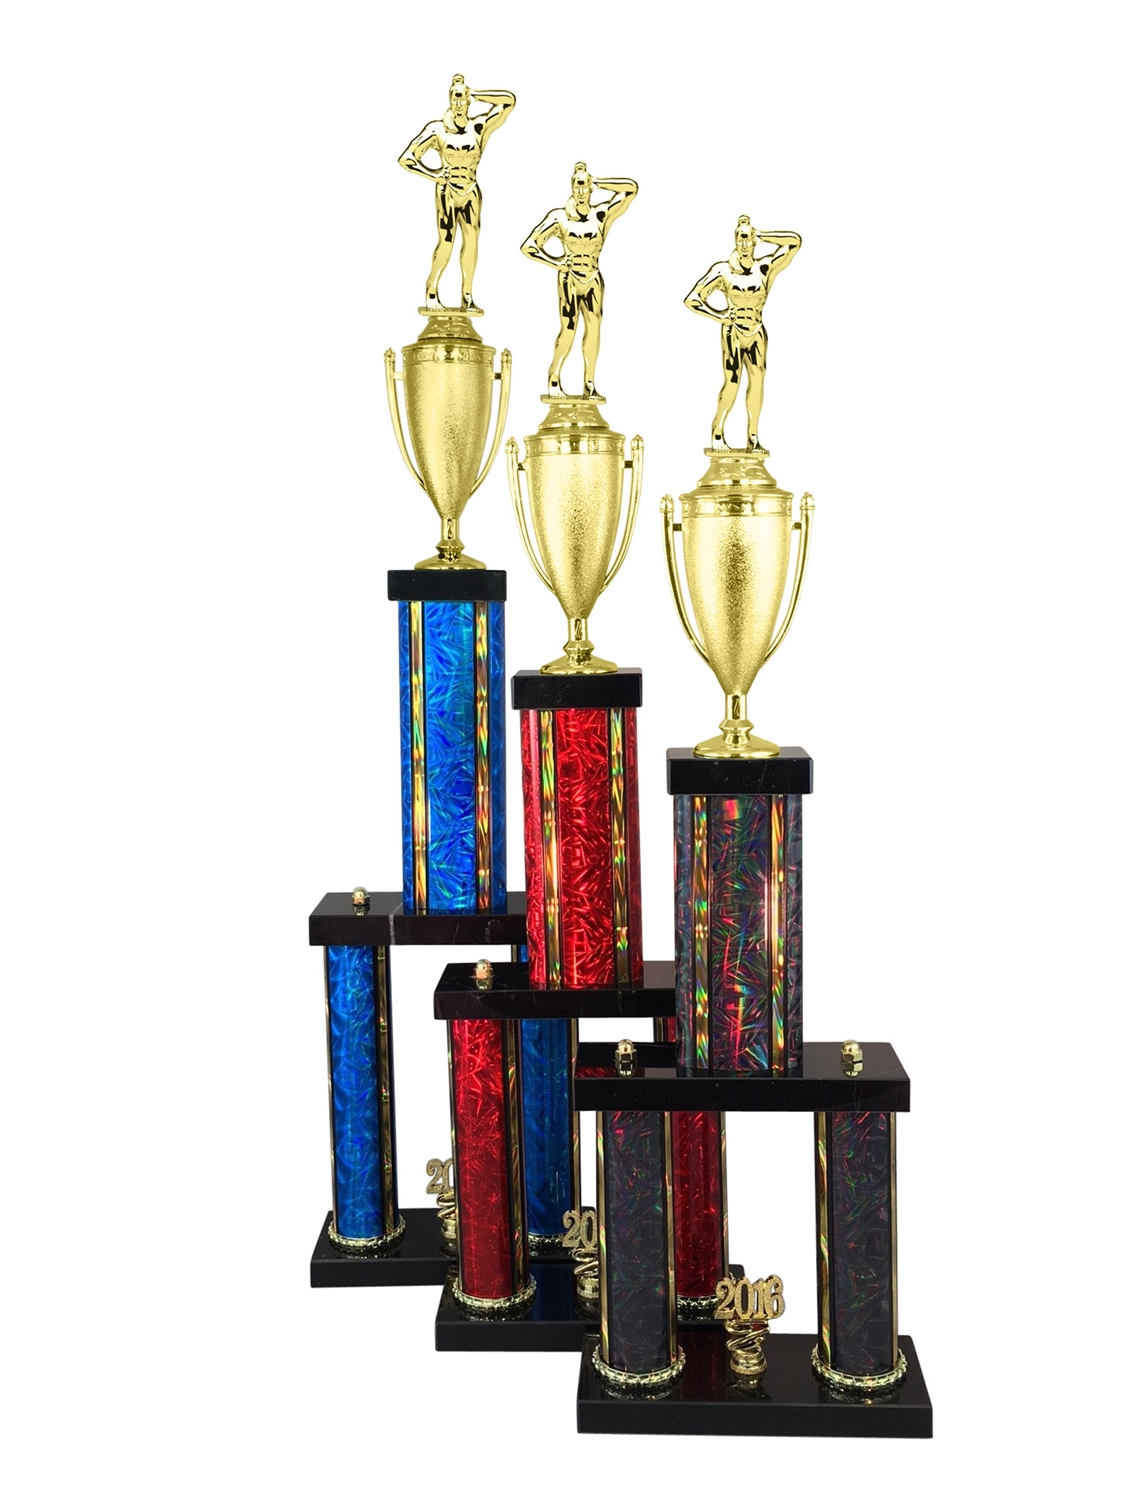 Female Body Building Trophy Available in 11 Color & 6 Size Options